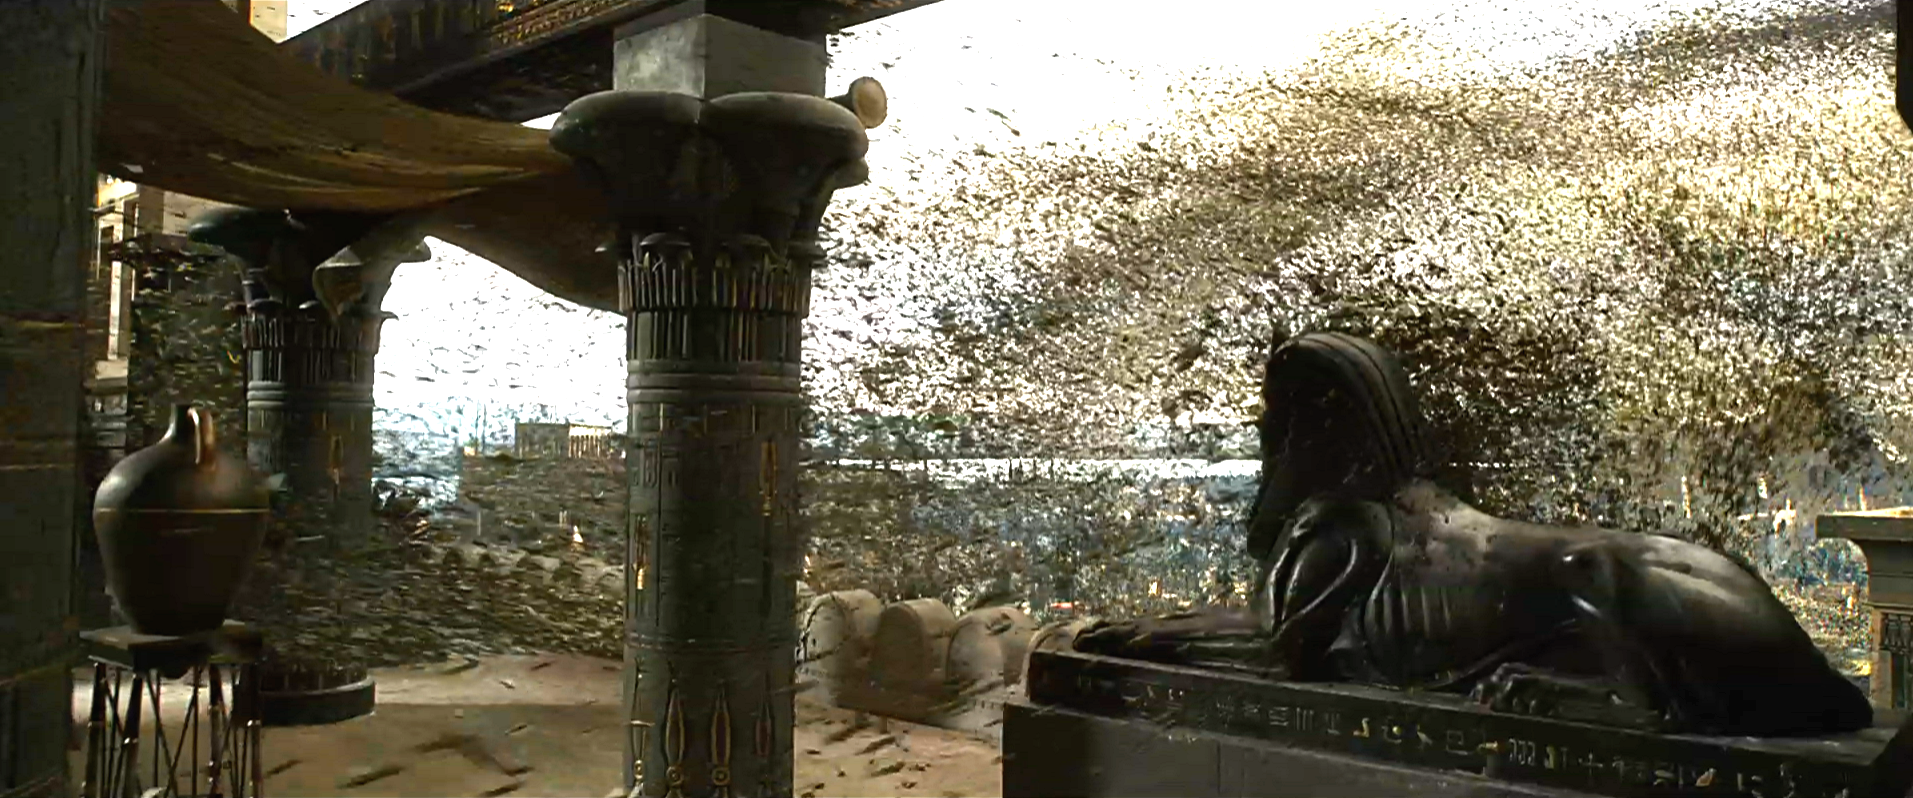 "The ""Plague of Flies"" from the film ""Exodus: Gods and Kings."""